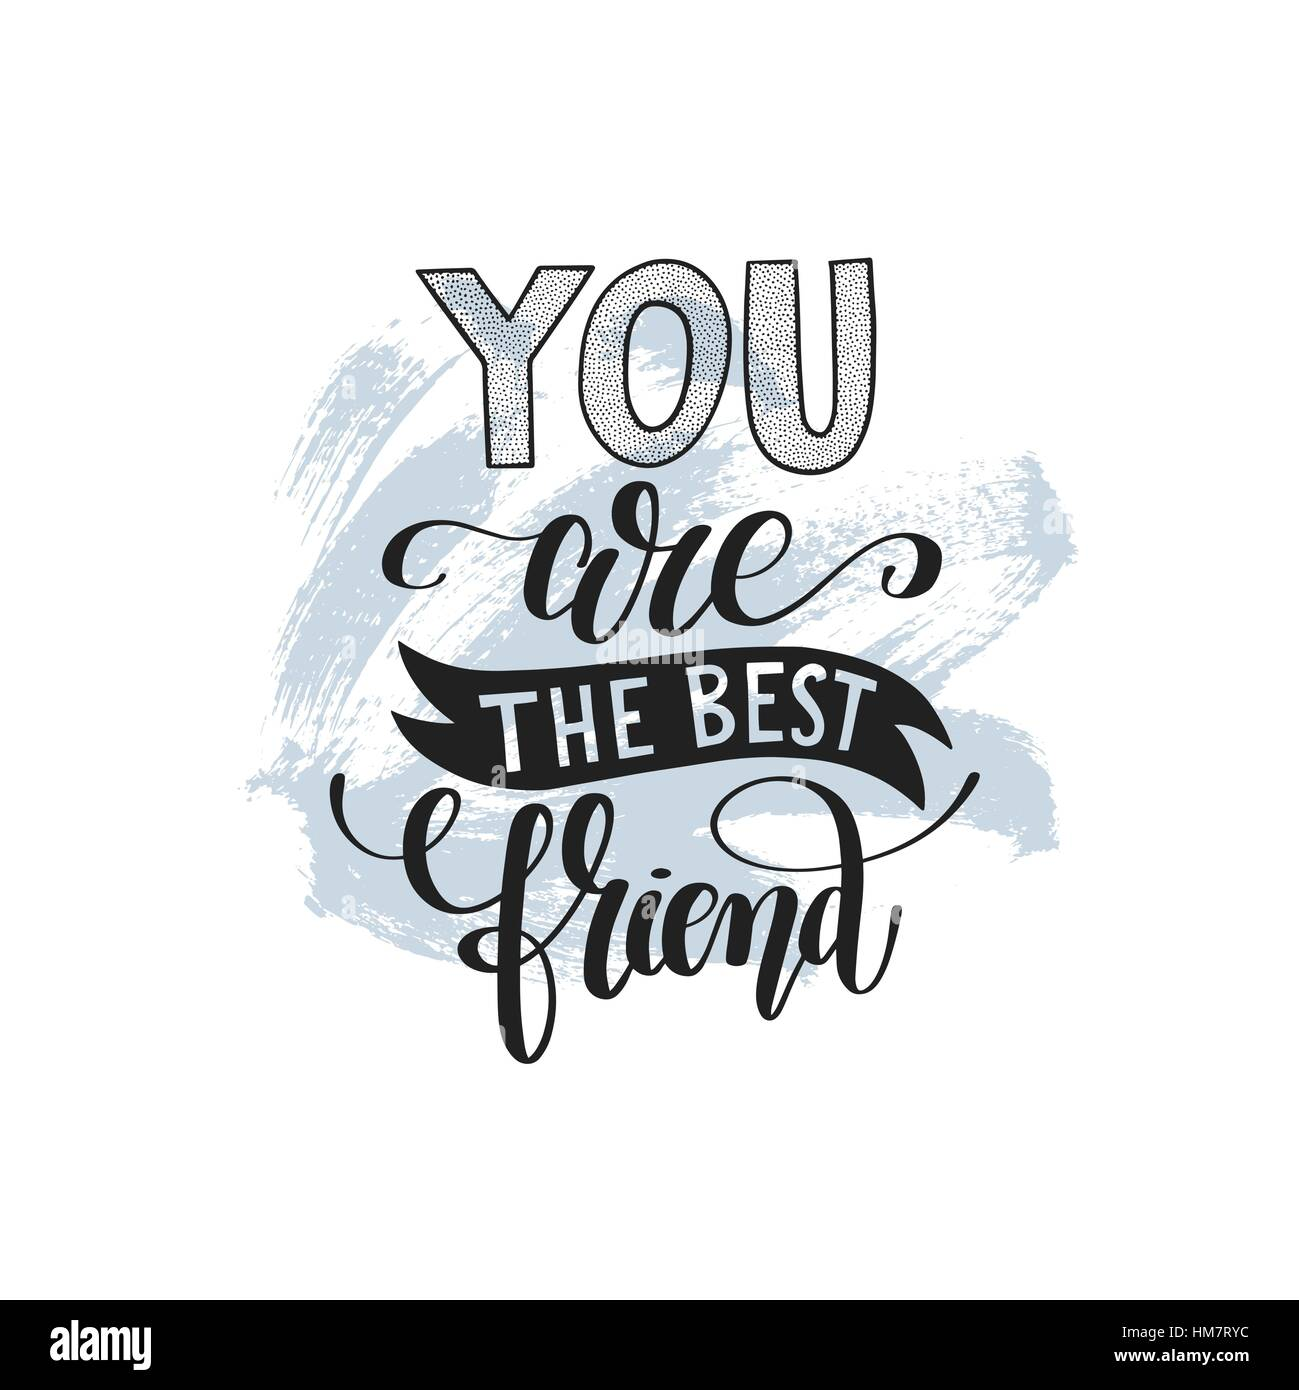 you are best friend